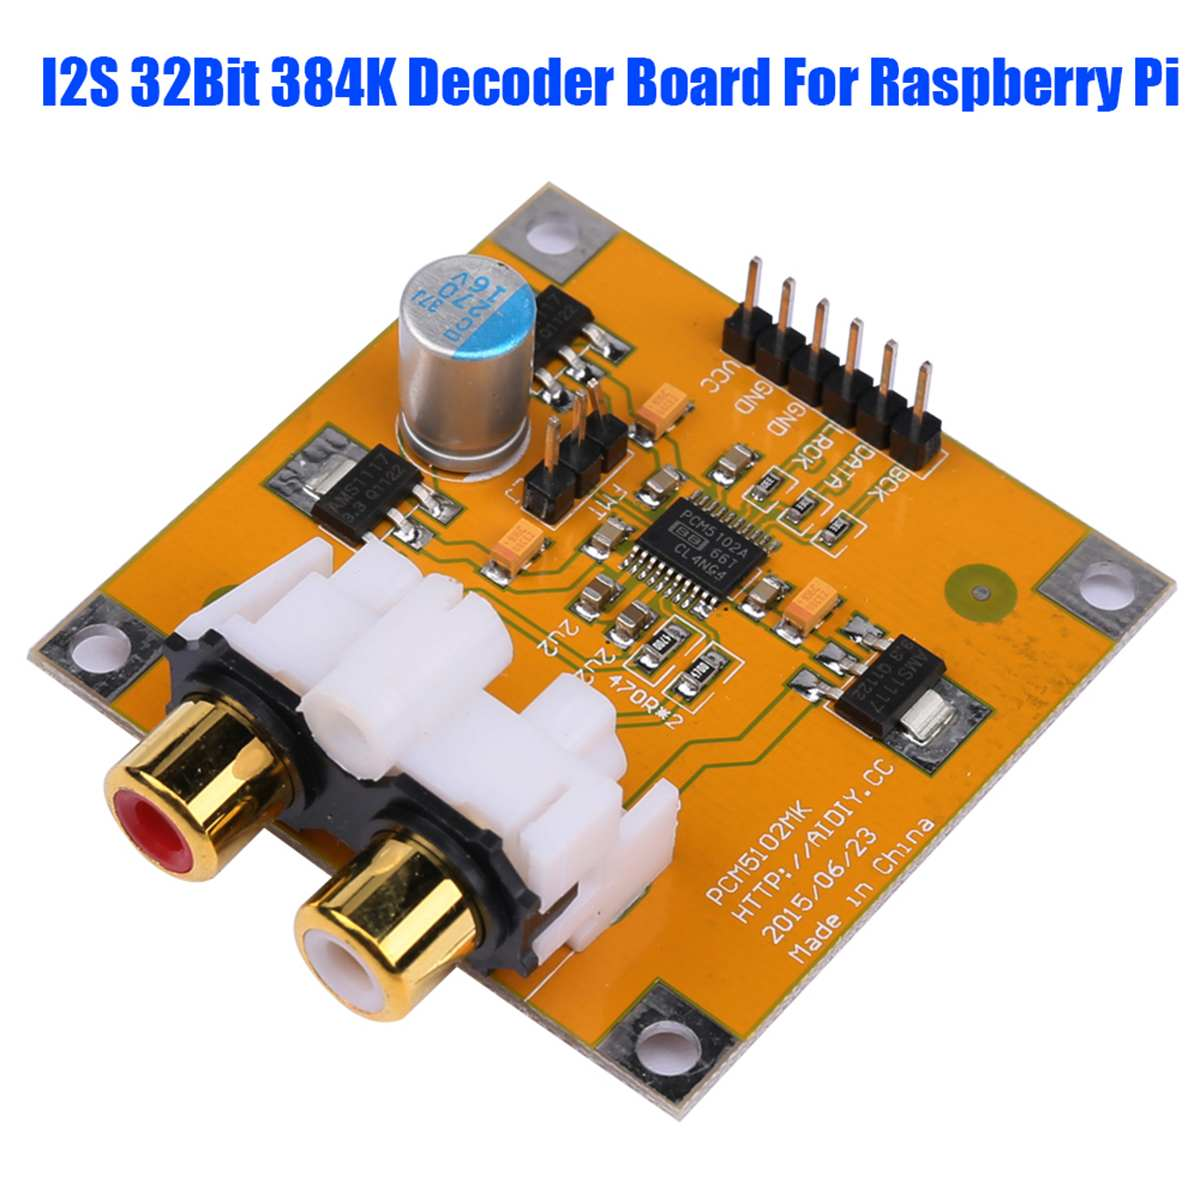 Audio & Video Replacement Parts Back To Search Resultsconsumer Electronics Cliate 1pc Dac Decoder Board M5102/pcm5102a I2s 32bit 384k For Raspberry Pi Red Core Player